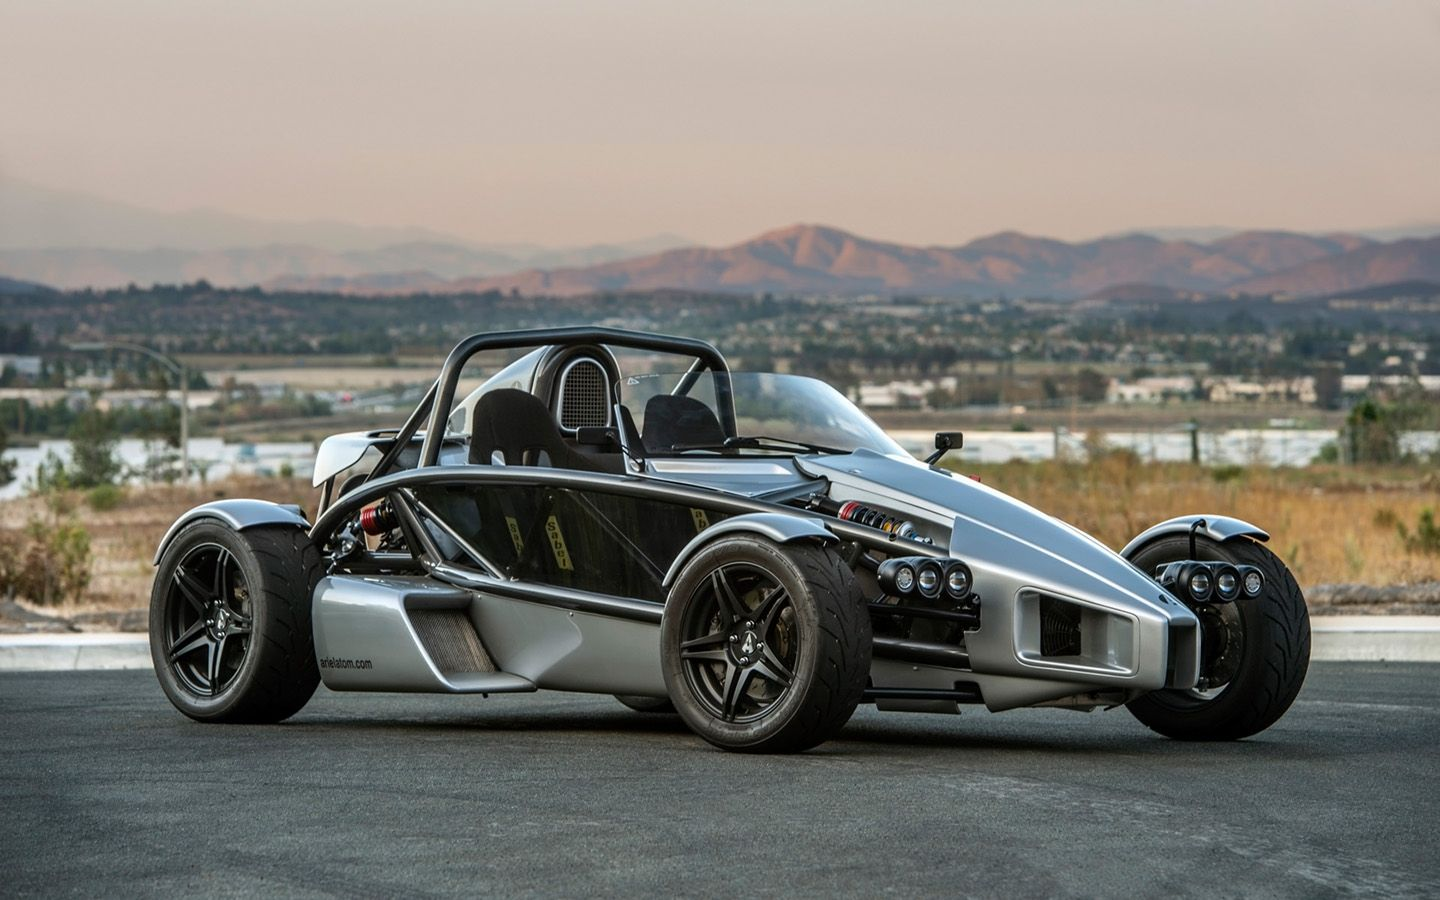 Ariel Atom 3s For When I Have A 3 Car Garage And An Extra 80k